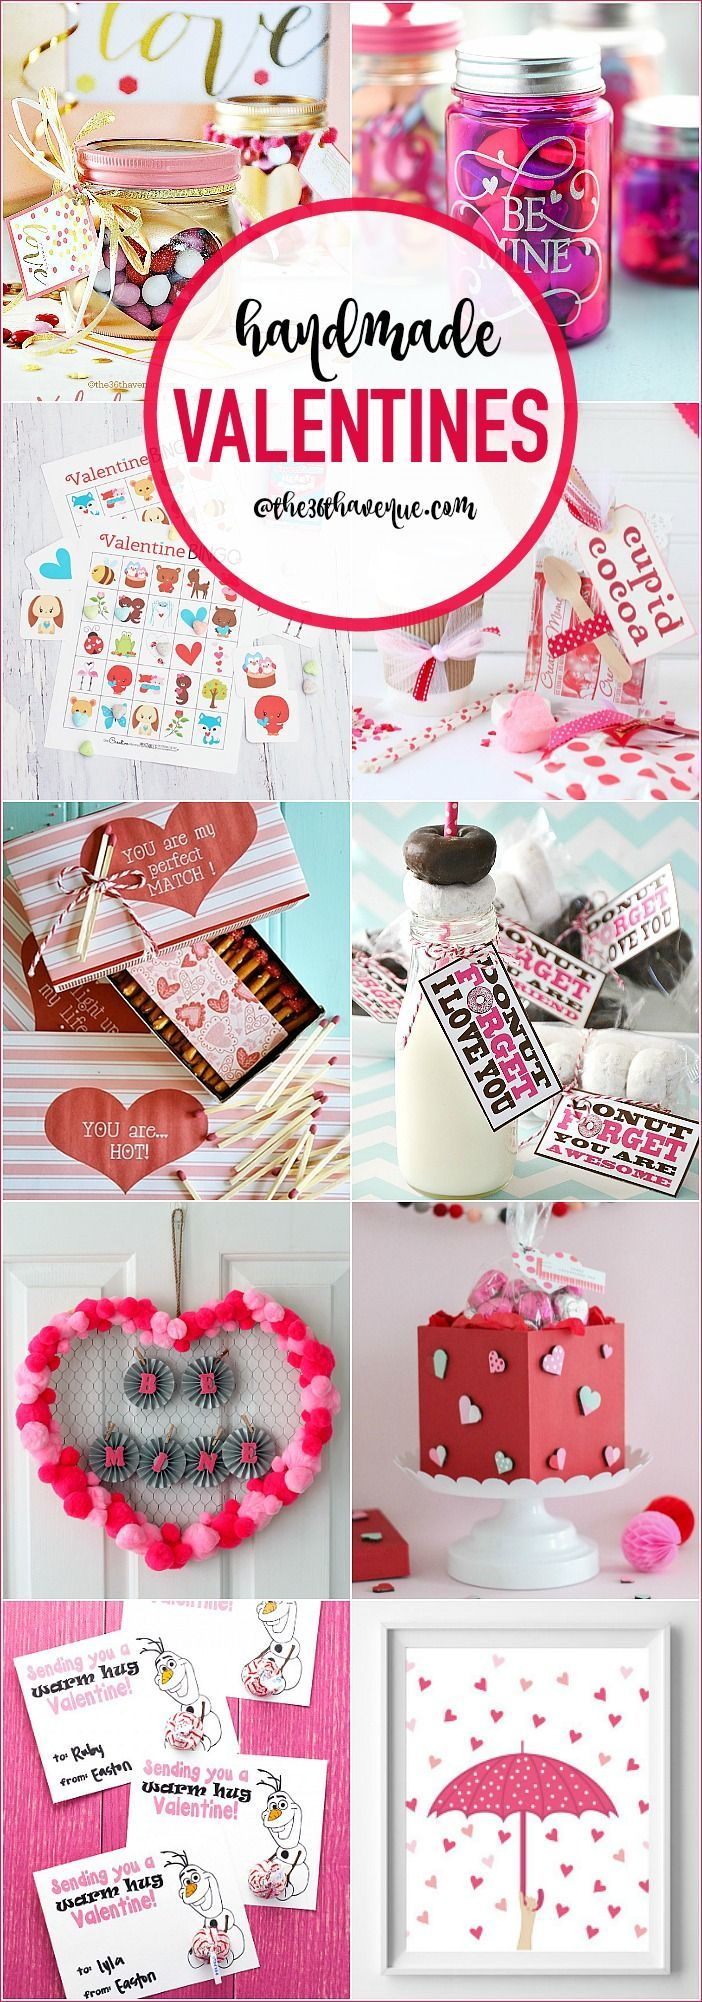 334 best valentine's day ideas & decor images on pinterest